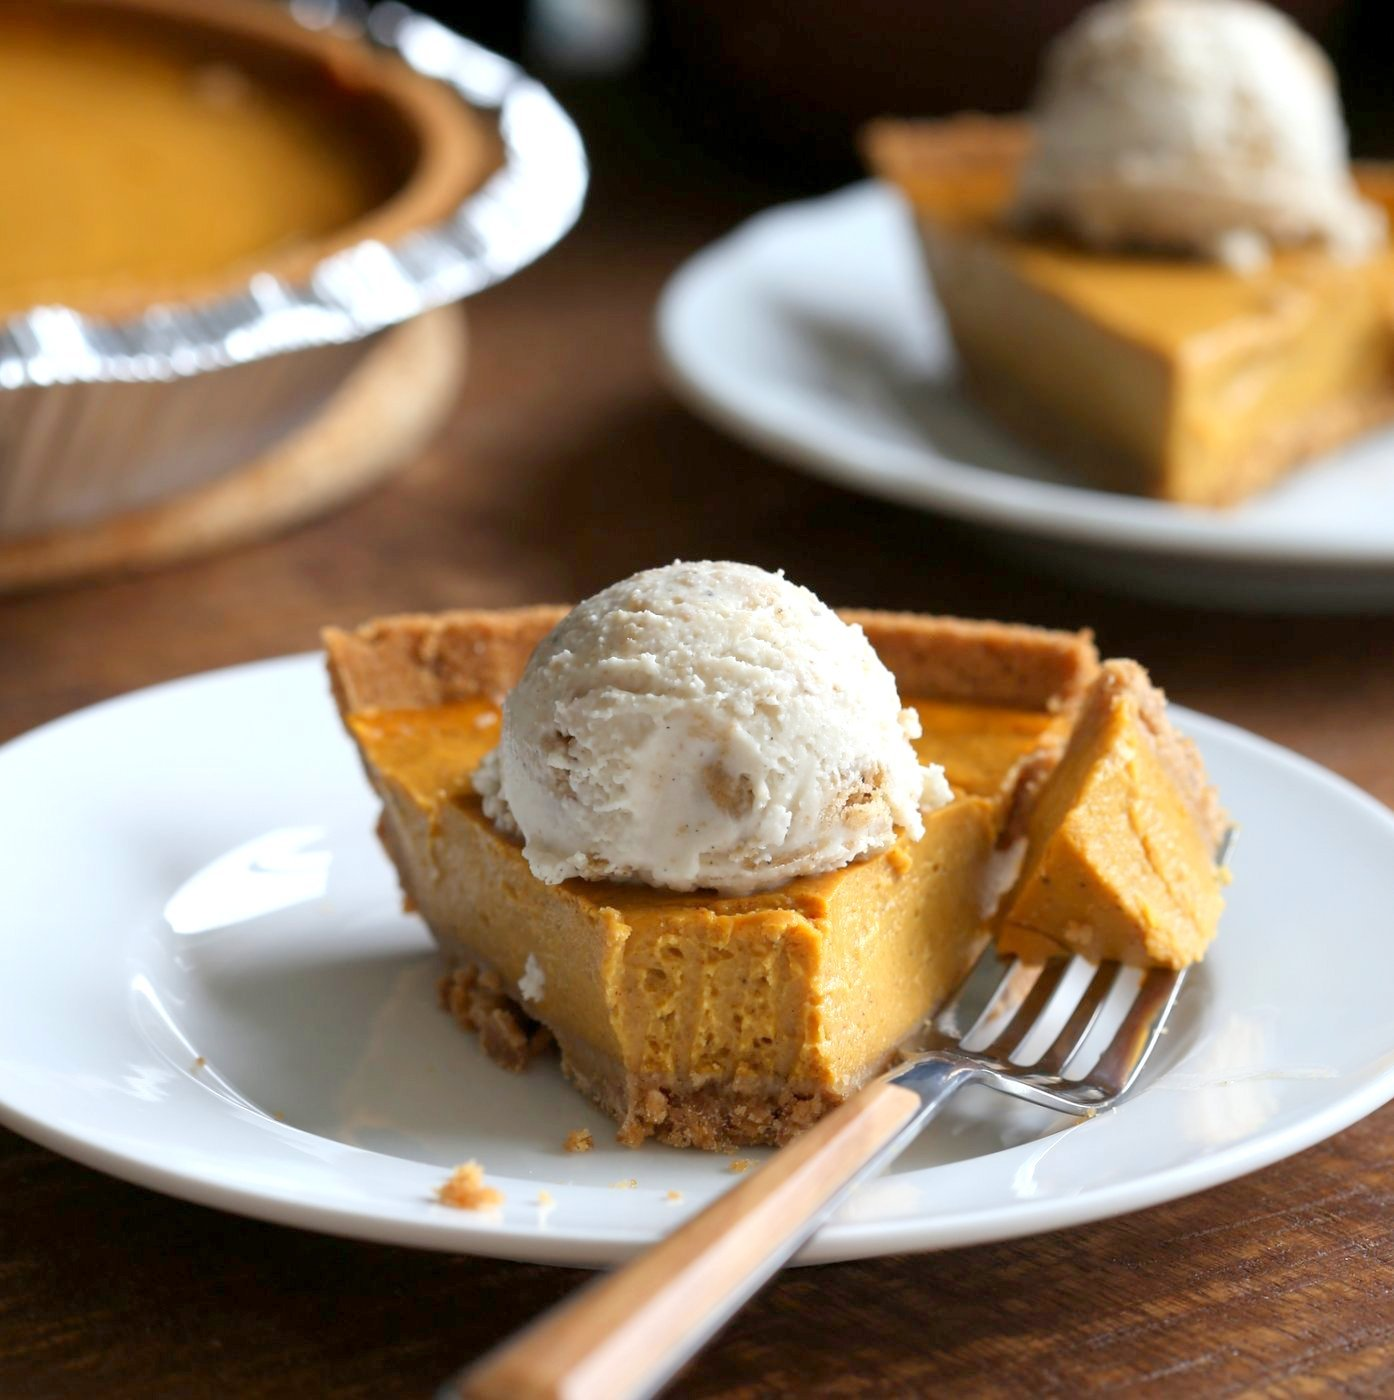 Vegan Pumpkin Cheesecake with graham cracker style crust. Easy Creamy Pumpkin Cheesecake to please everyone. Gluten-free with gluten free crust.# Soyfree #Recipe #vegan #pumpkinheesecake #veganricha | VeganRicha.com